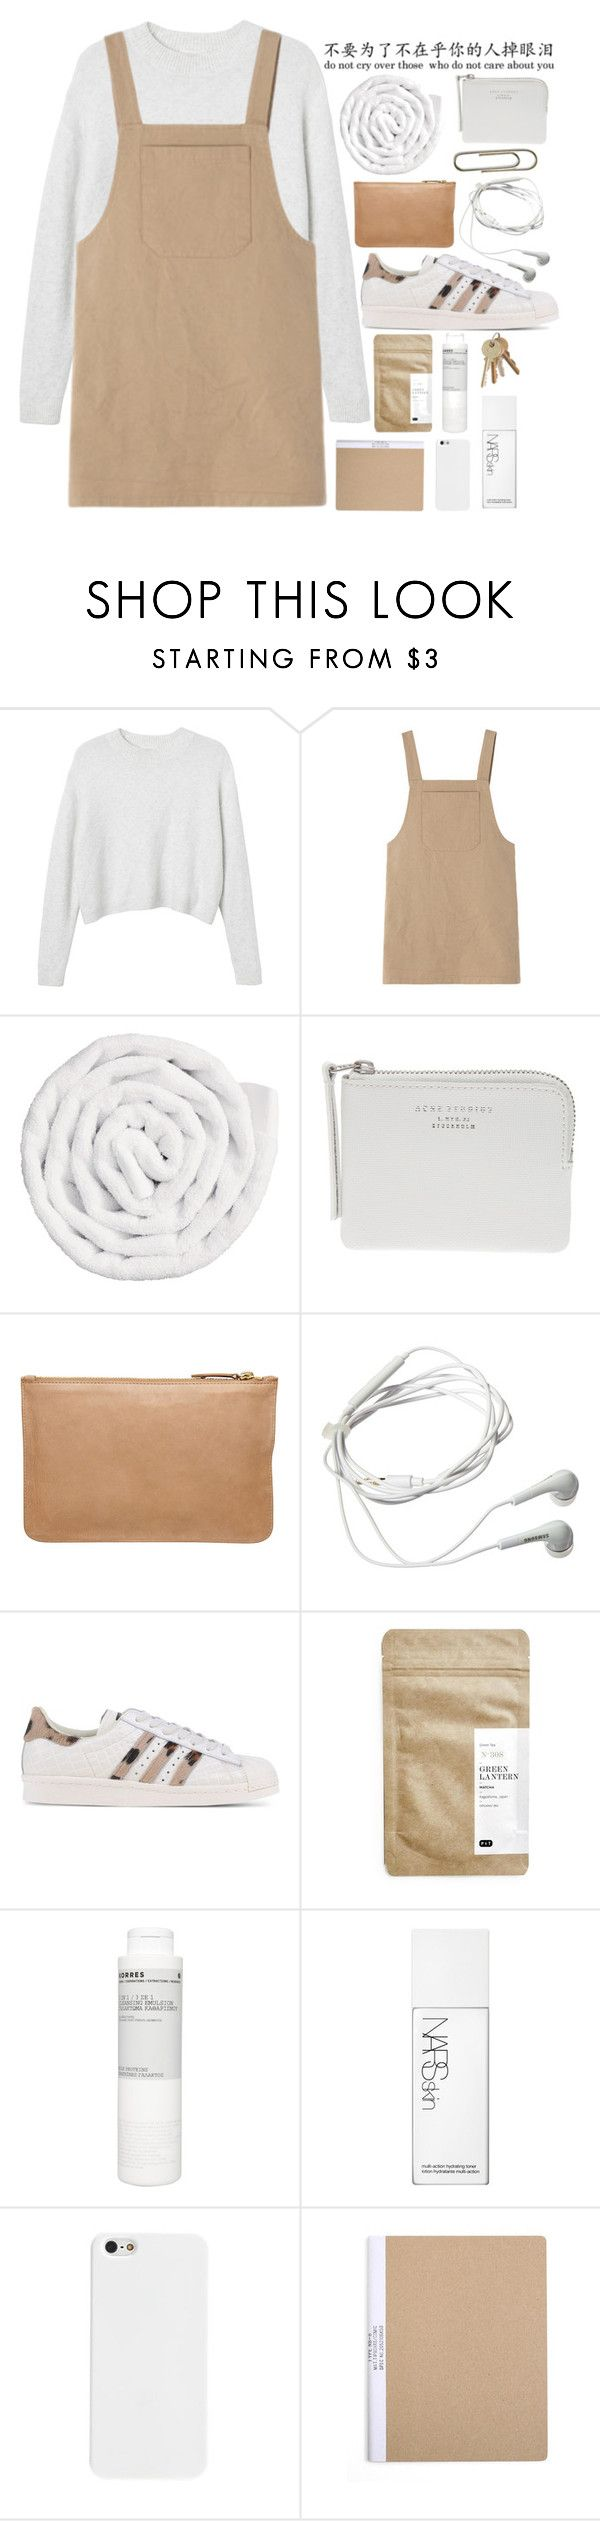 """""""Inspired - Poppy Deyes"""" by mia-lydia-lowe ❤ liked on Polyvore featuring Monki, VIPP, Acne Studios, Witchery, Samsung, adidas Originals, Paper & Tea, Korres and NARS Cosmetics"""